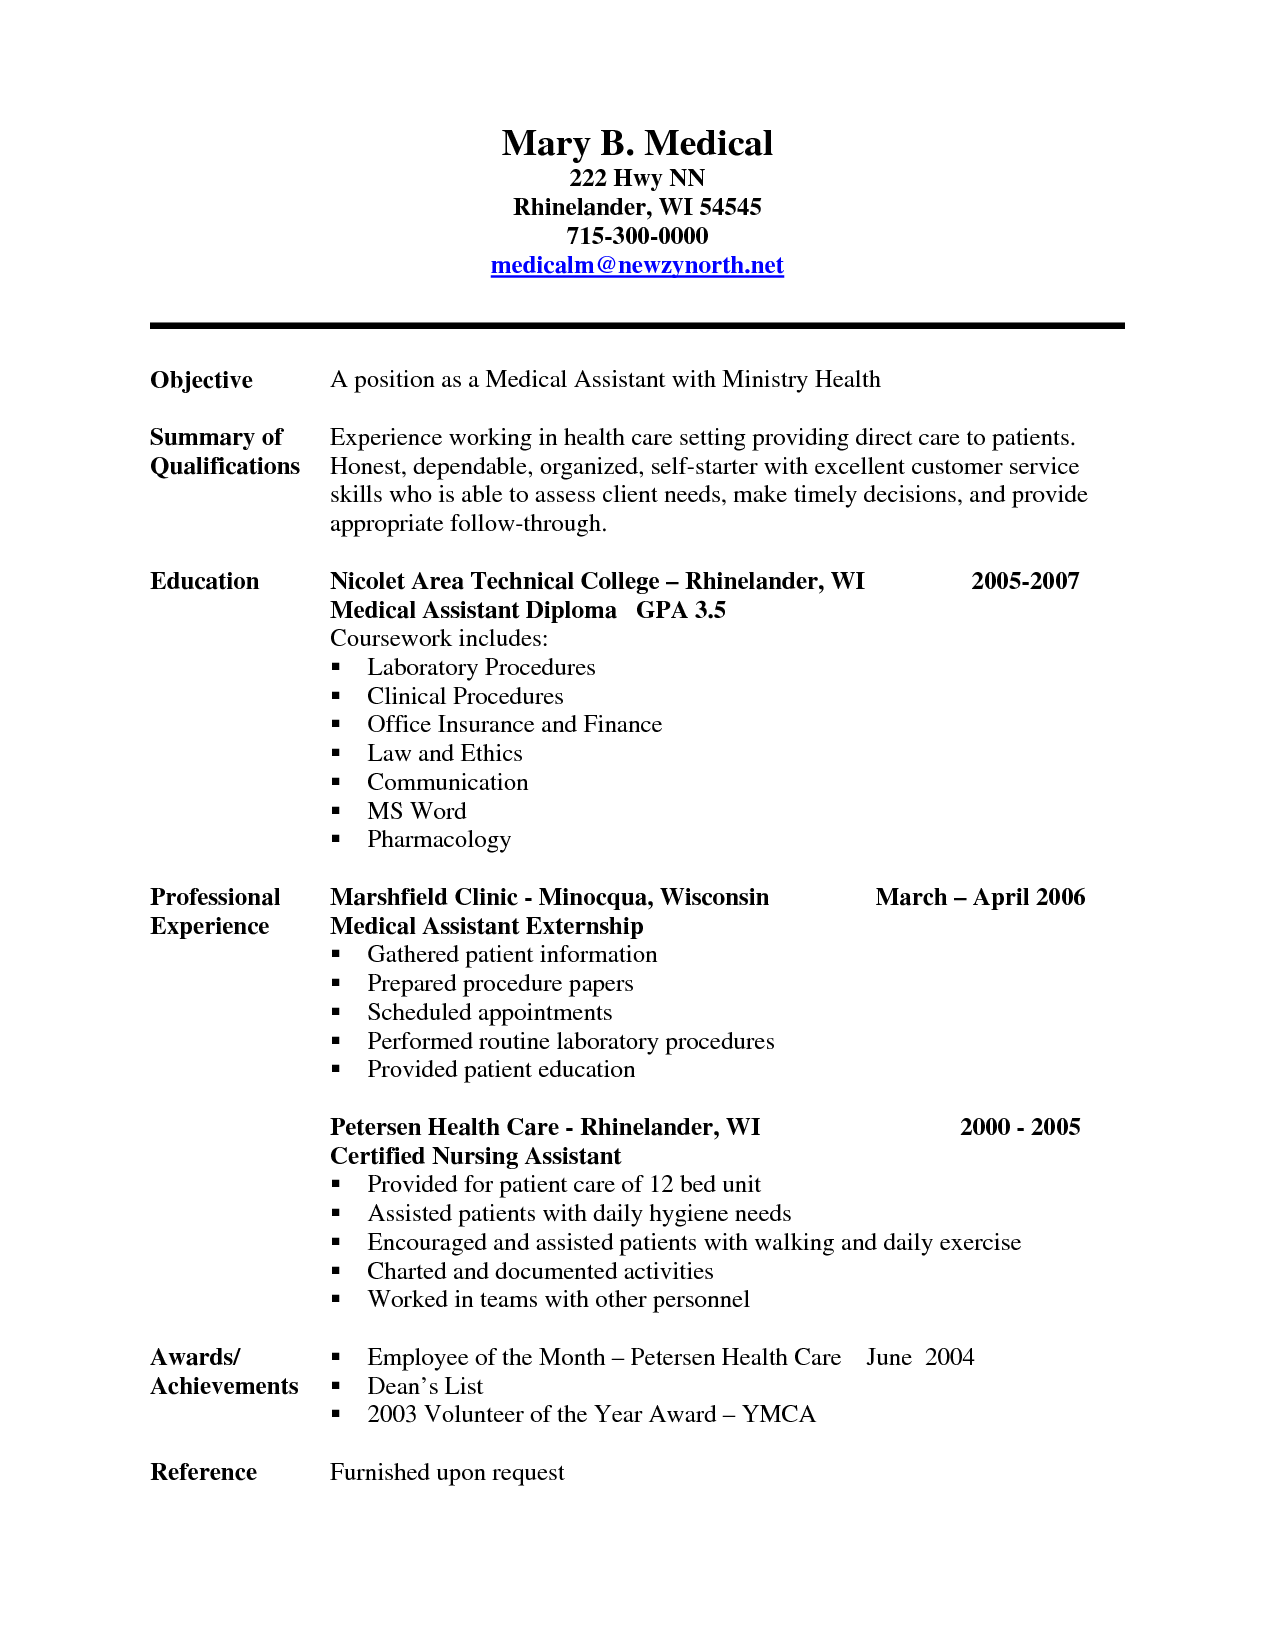 Resume Examples For Medical Assistant Experienced Medical Assistant Resume Sample Cakepins